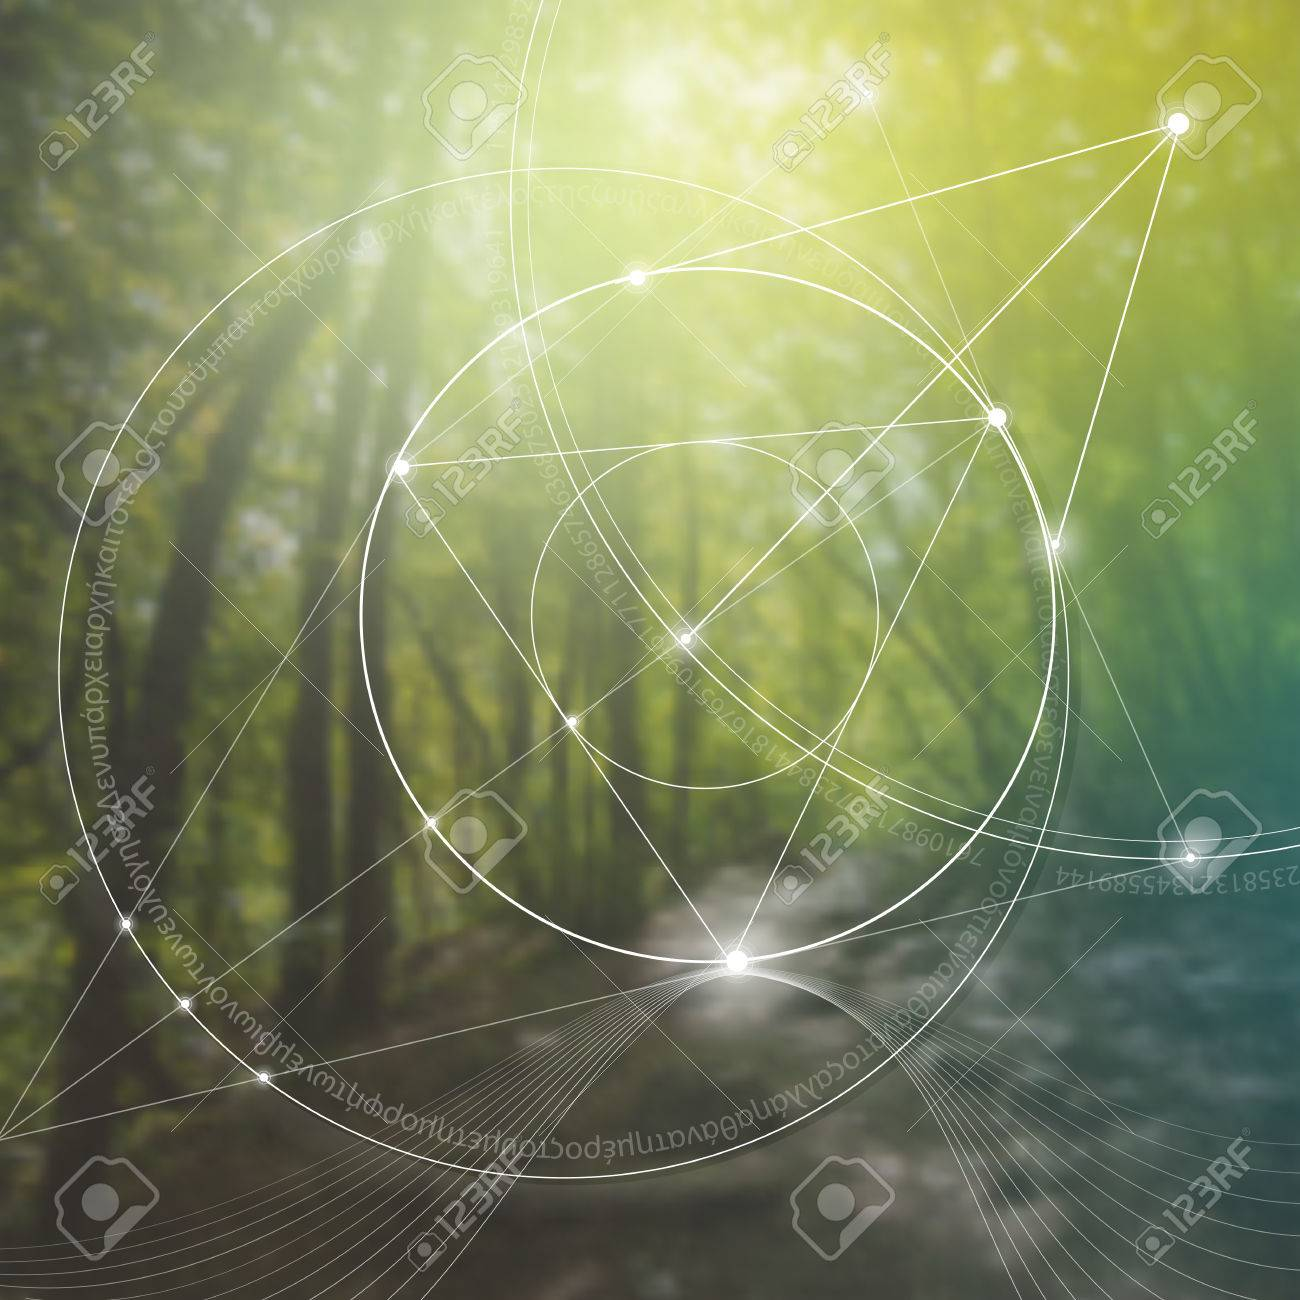 Sacred geometry. Mathematics, nature, and spirituality in nature. The formula of nature. There is no beginning and no end of the Universe, and no beginning and no end of the Life and the Bliss. - 61411611